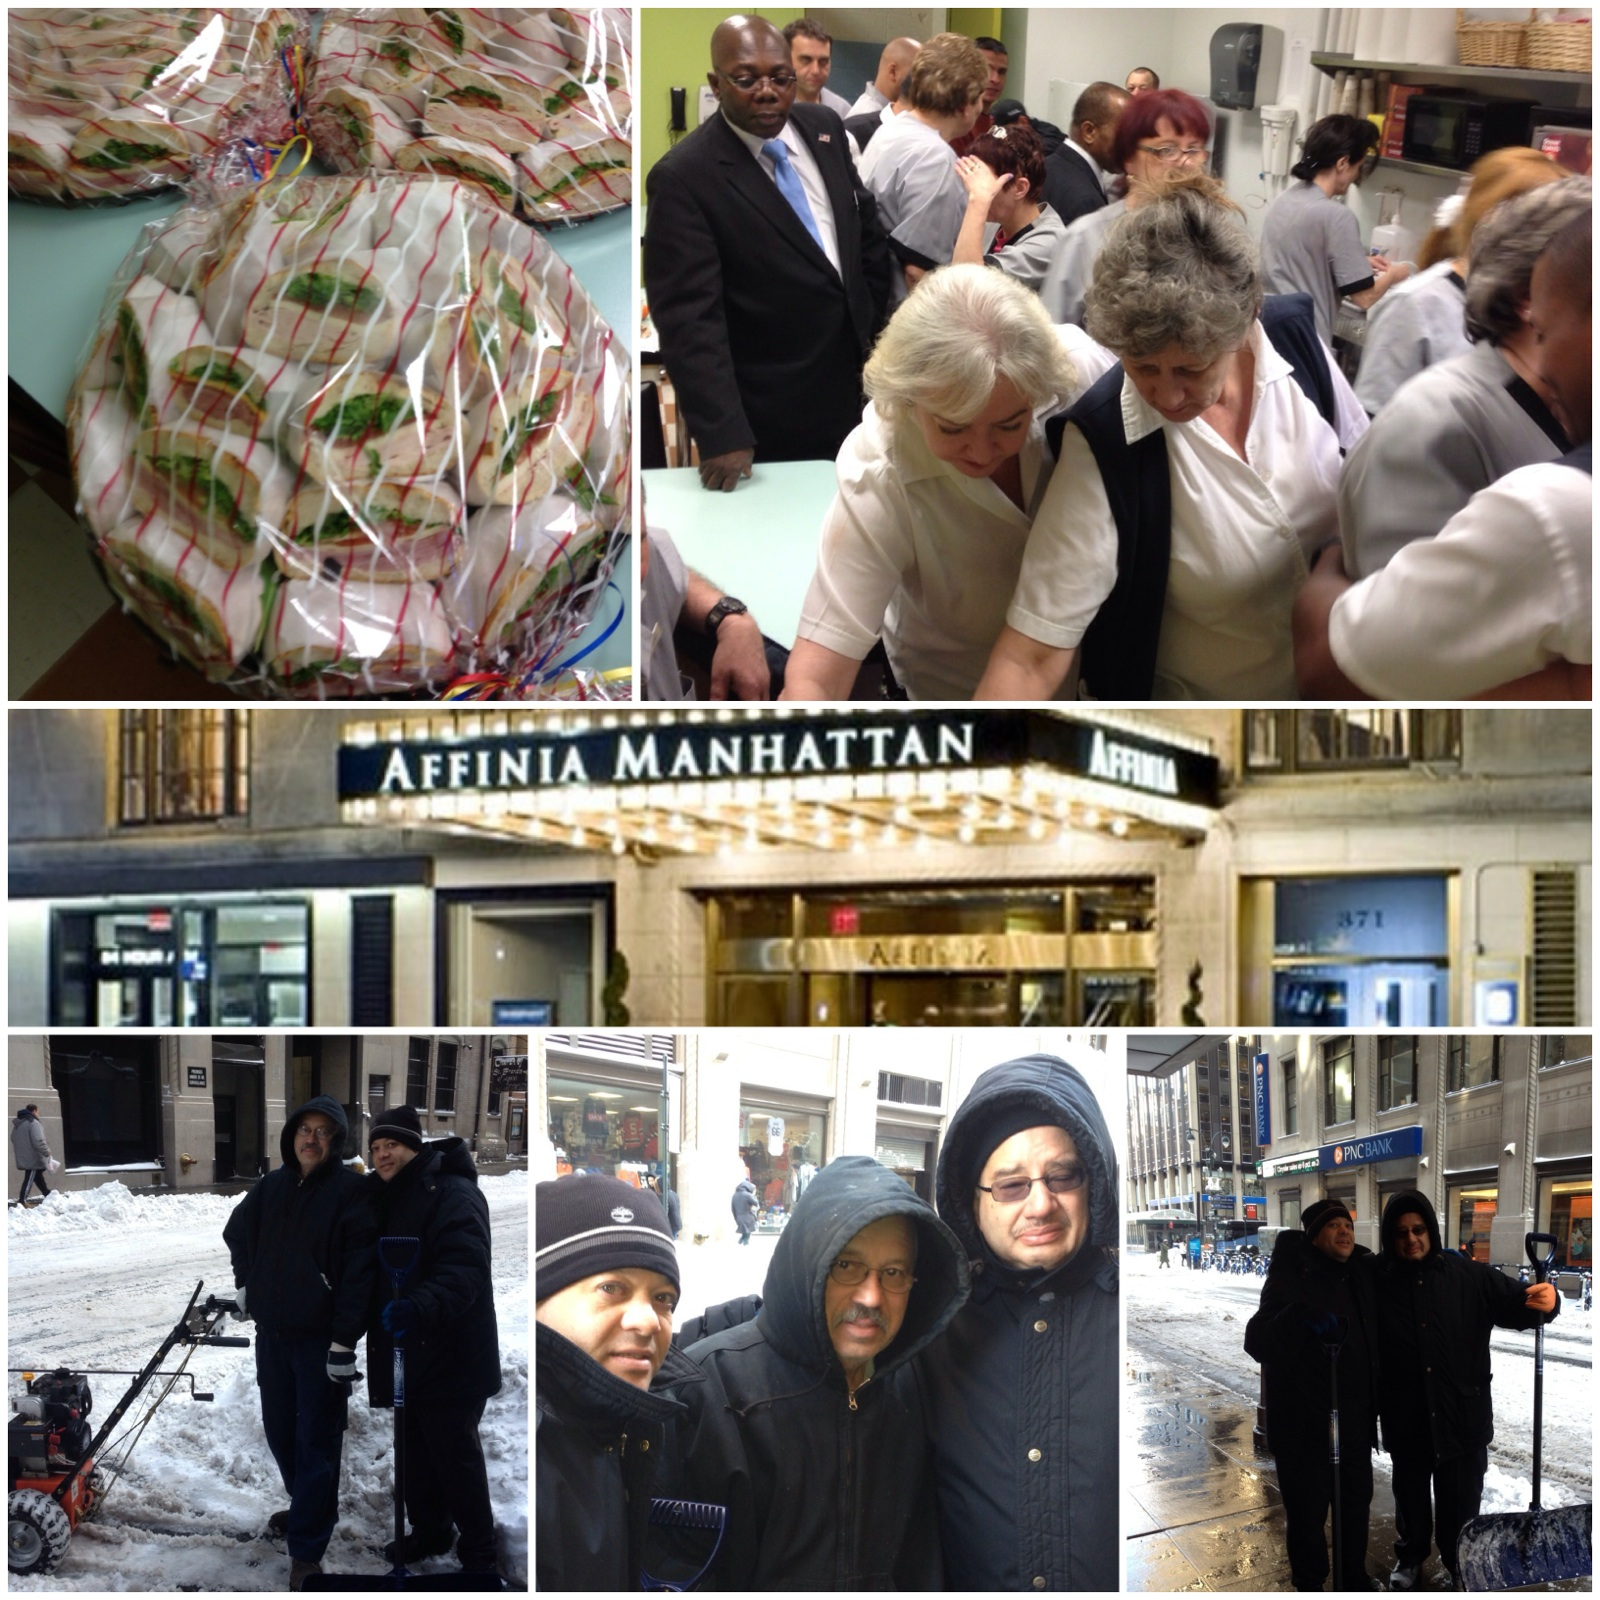 Affinia Manhattan Welcomes First Snow Storm of 2014